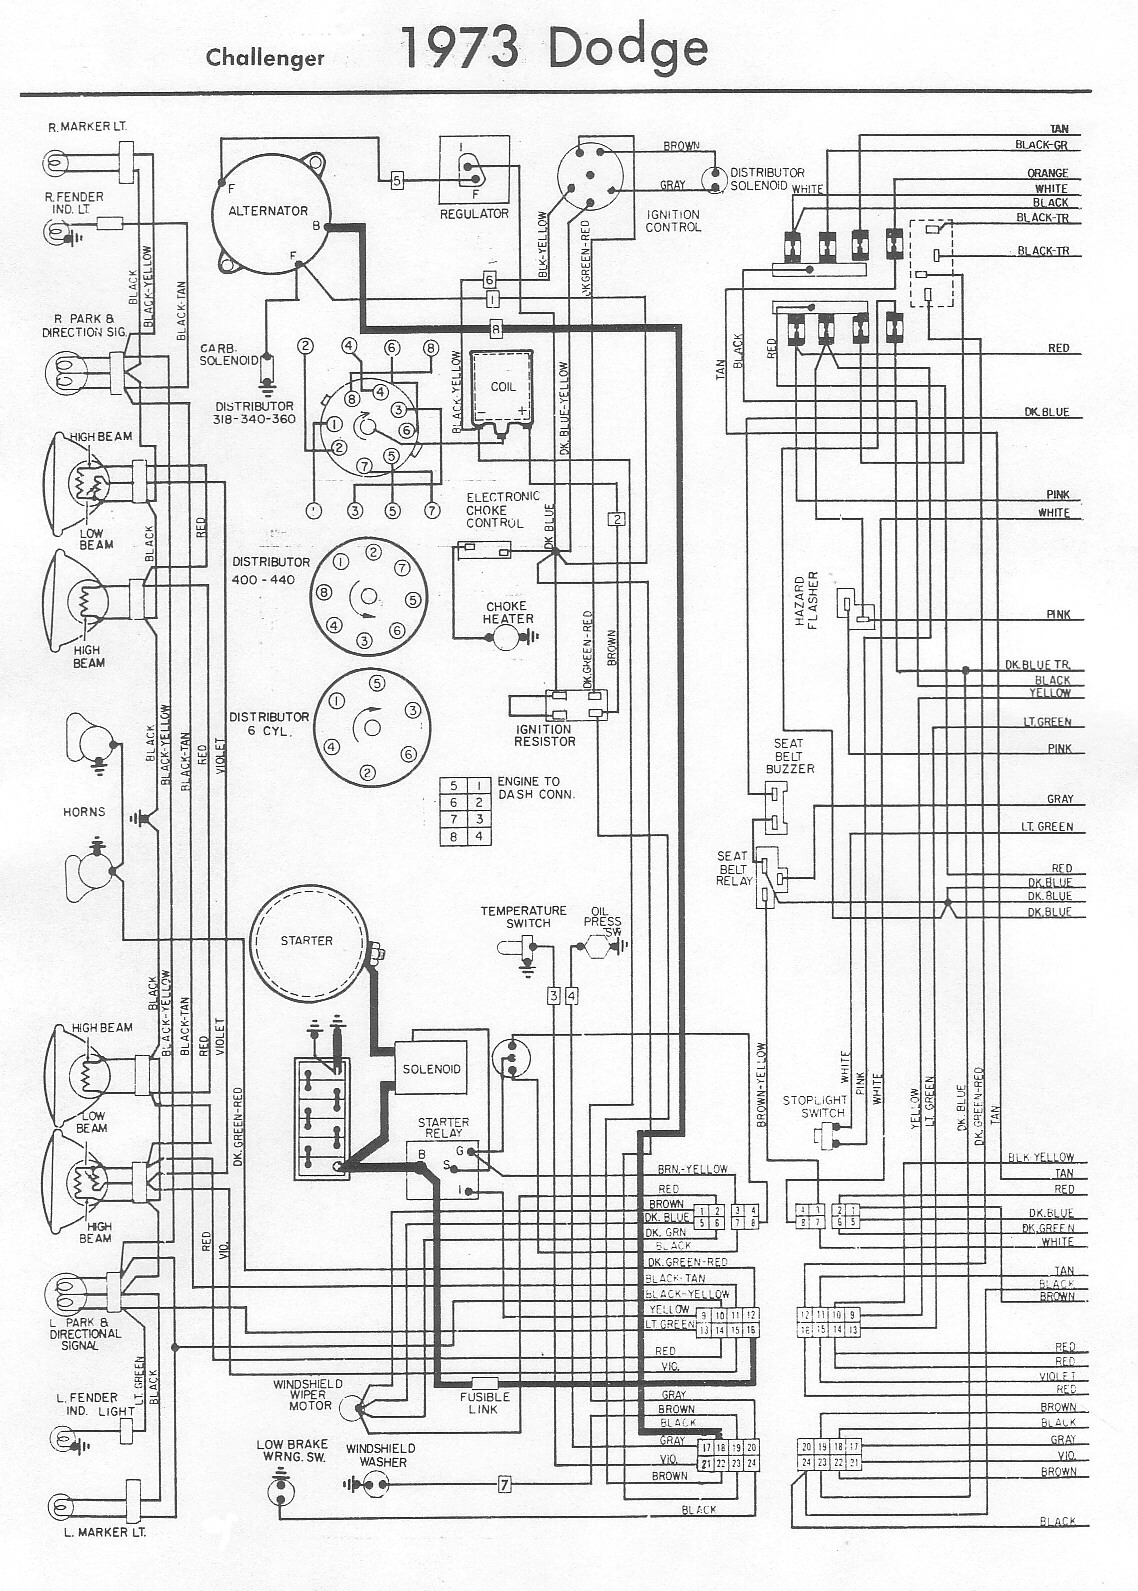 Dodge Challenger Wiring Schematics Archive Of Automotive 1970 Diagram 73 U2022 The Message Board Rh Files Mpoli Fi